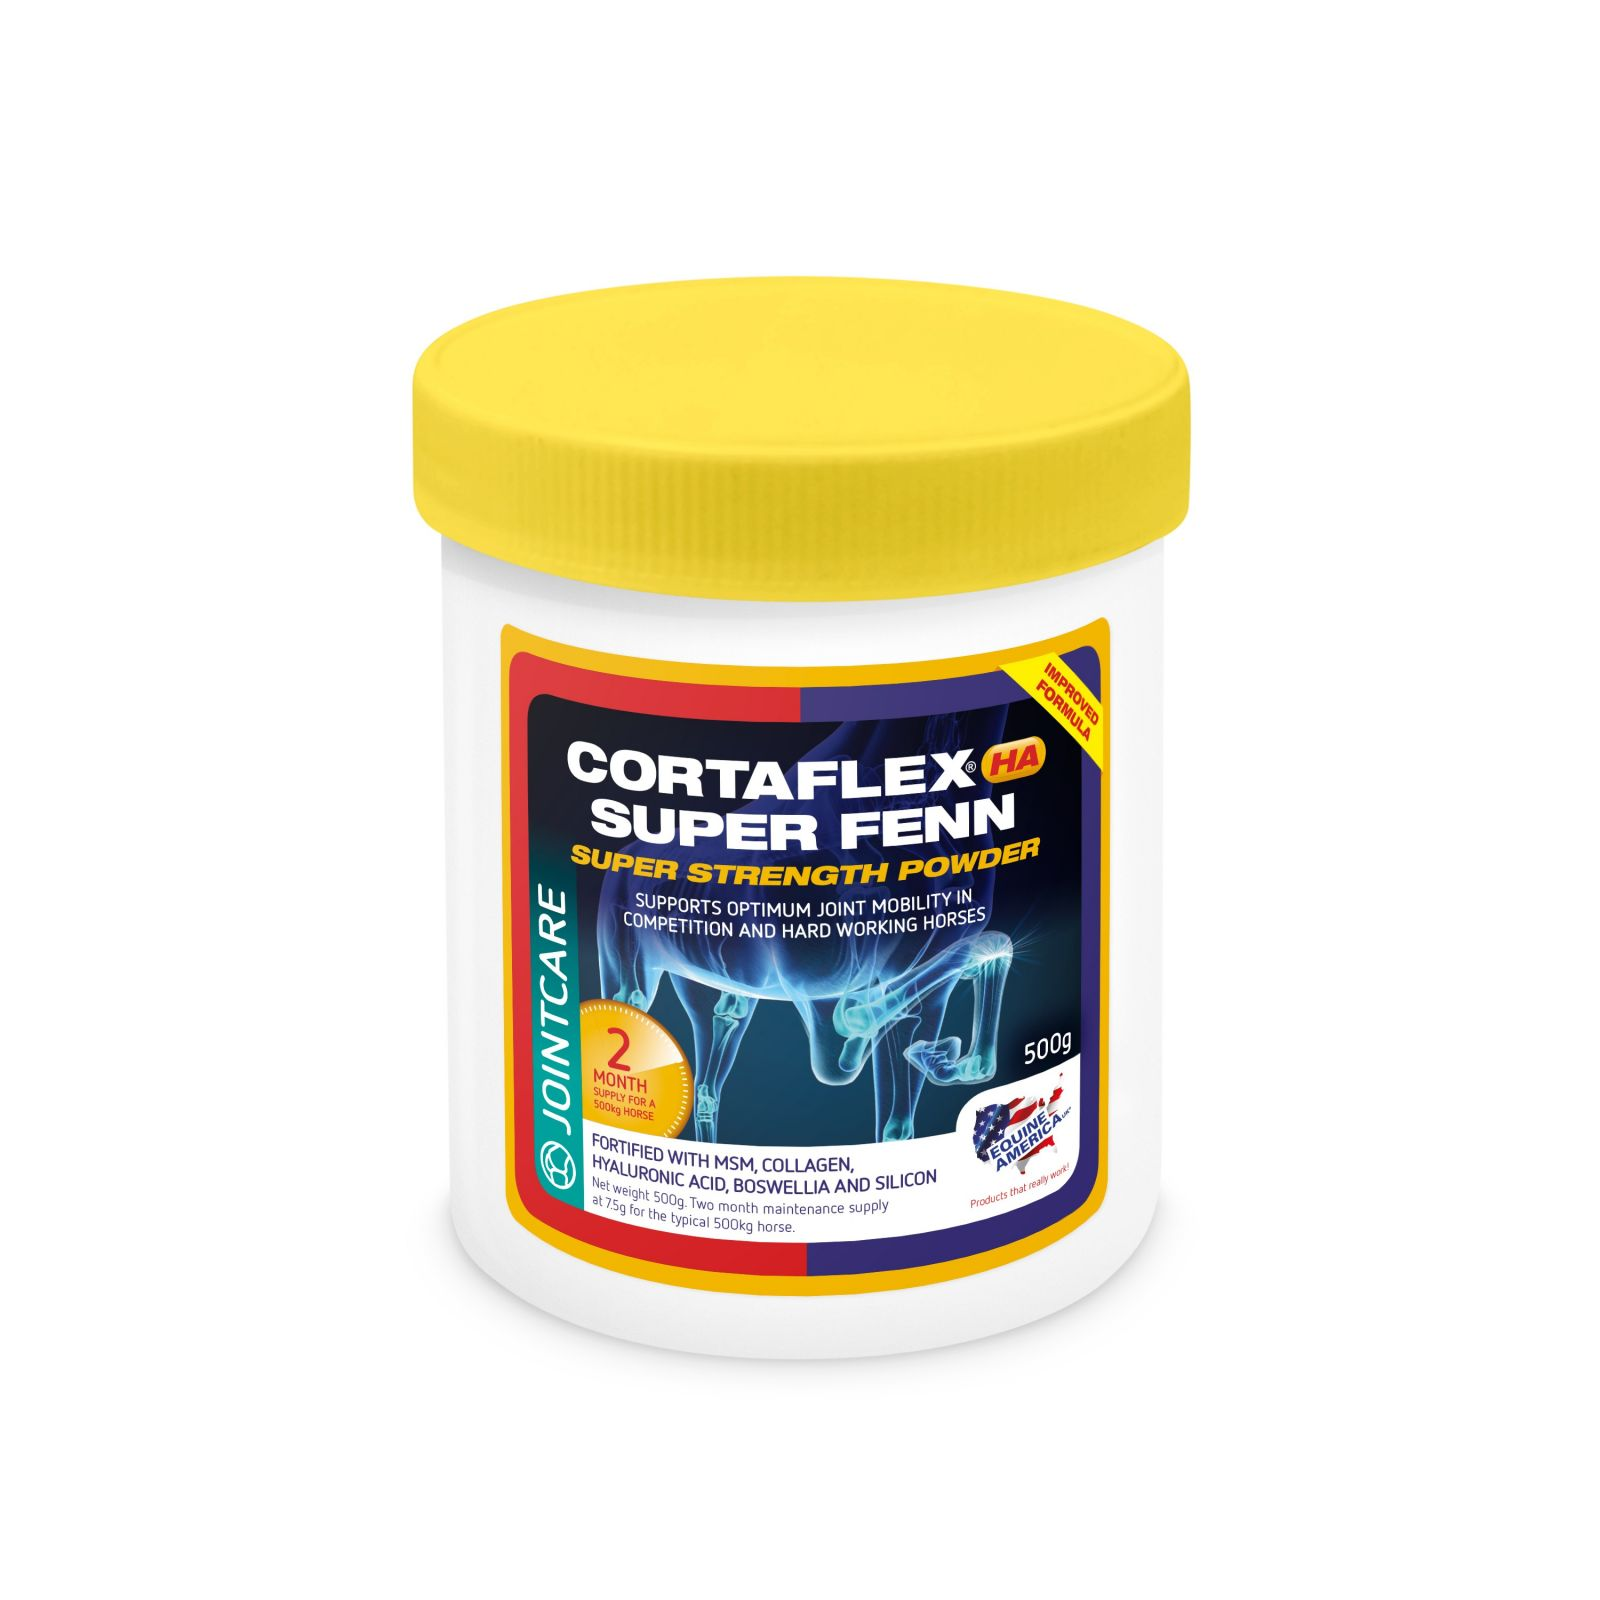 CORTAFLEX® HA SUPER FENN POWDER